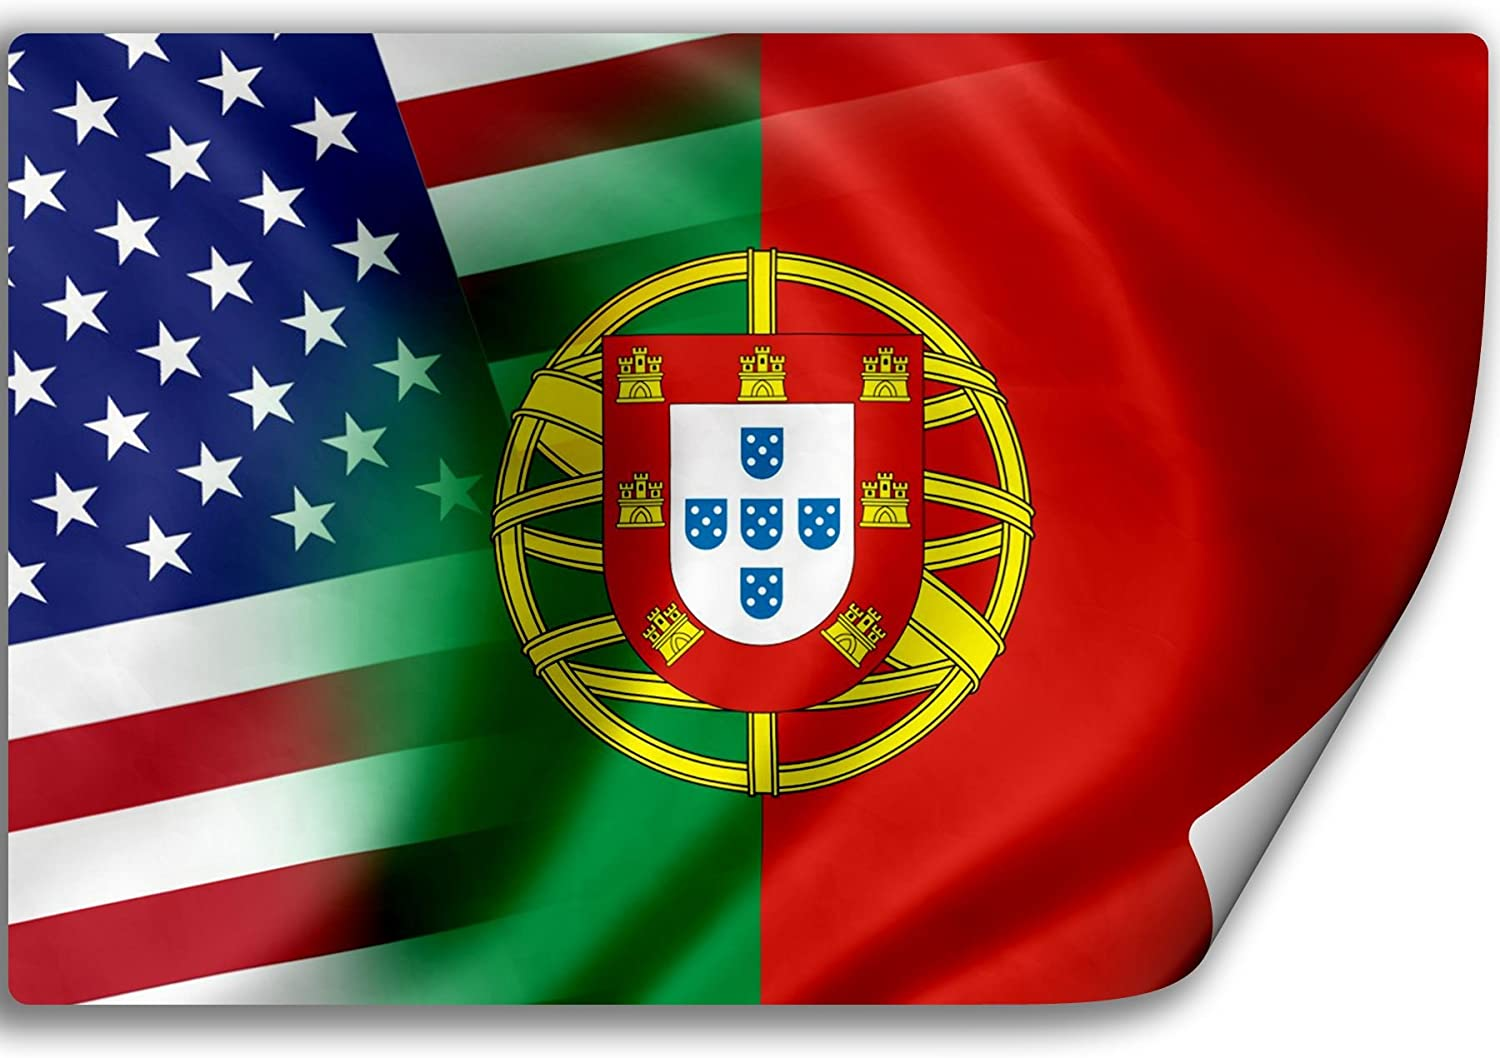 Amazon.com: ExpressItBest Sticker (Decal) with Flag of Portugal and USA ( Portuguese): Automotive